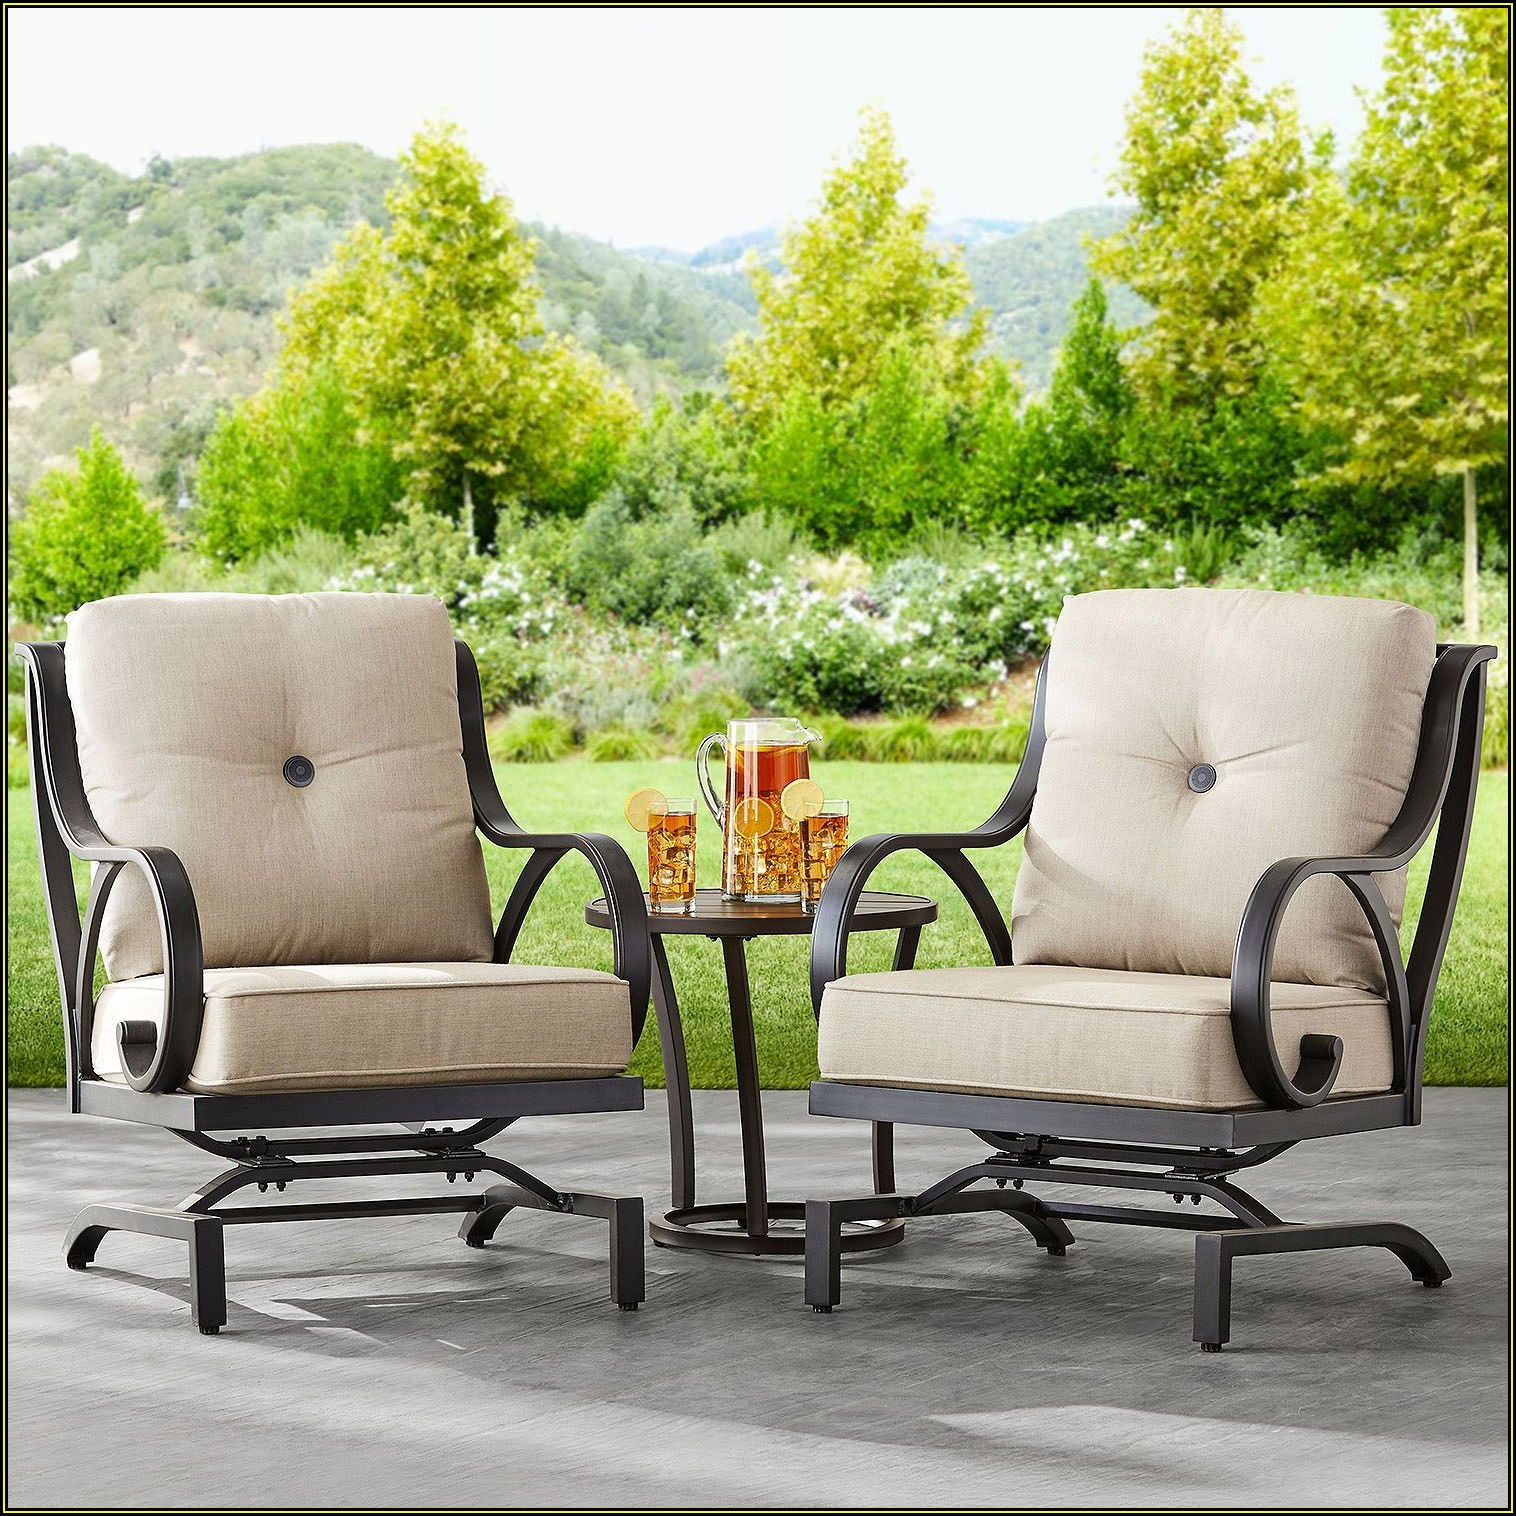 Mark Harbor Hill Patio Furniture